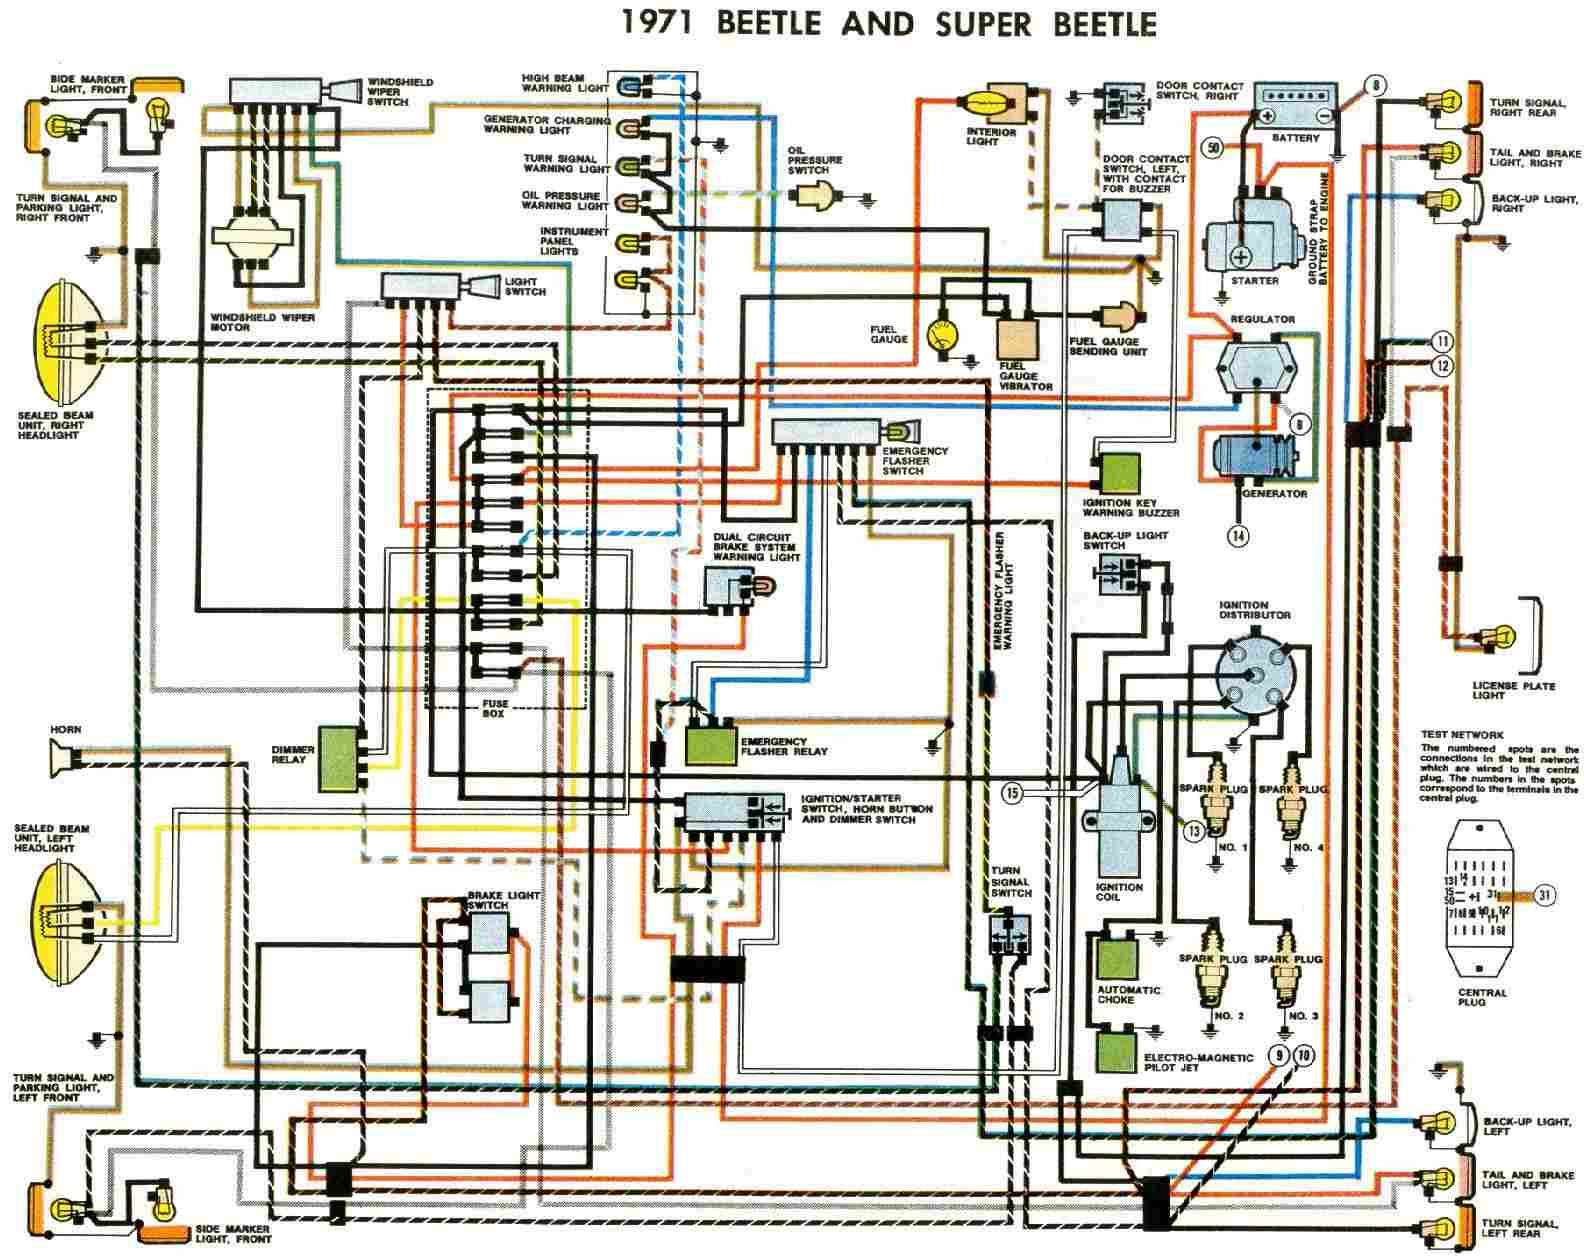 1971 Vw Beetle And Super Beetle on honda wiring diagram